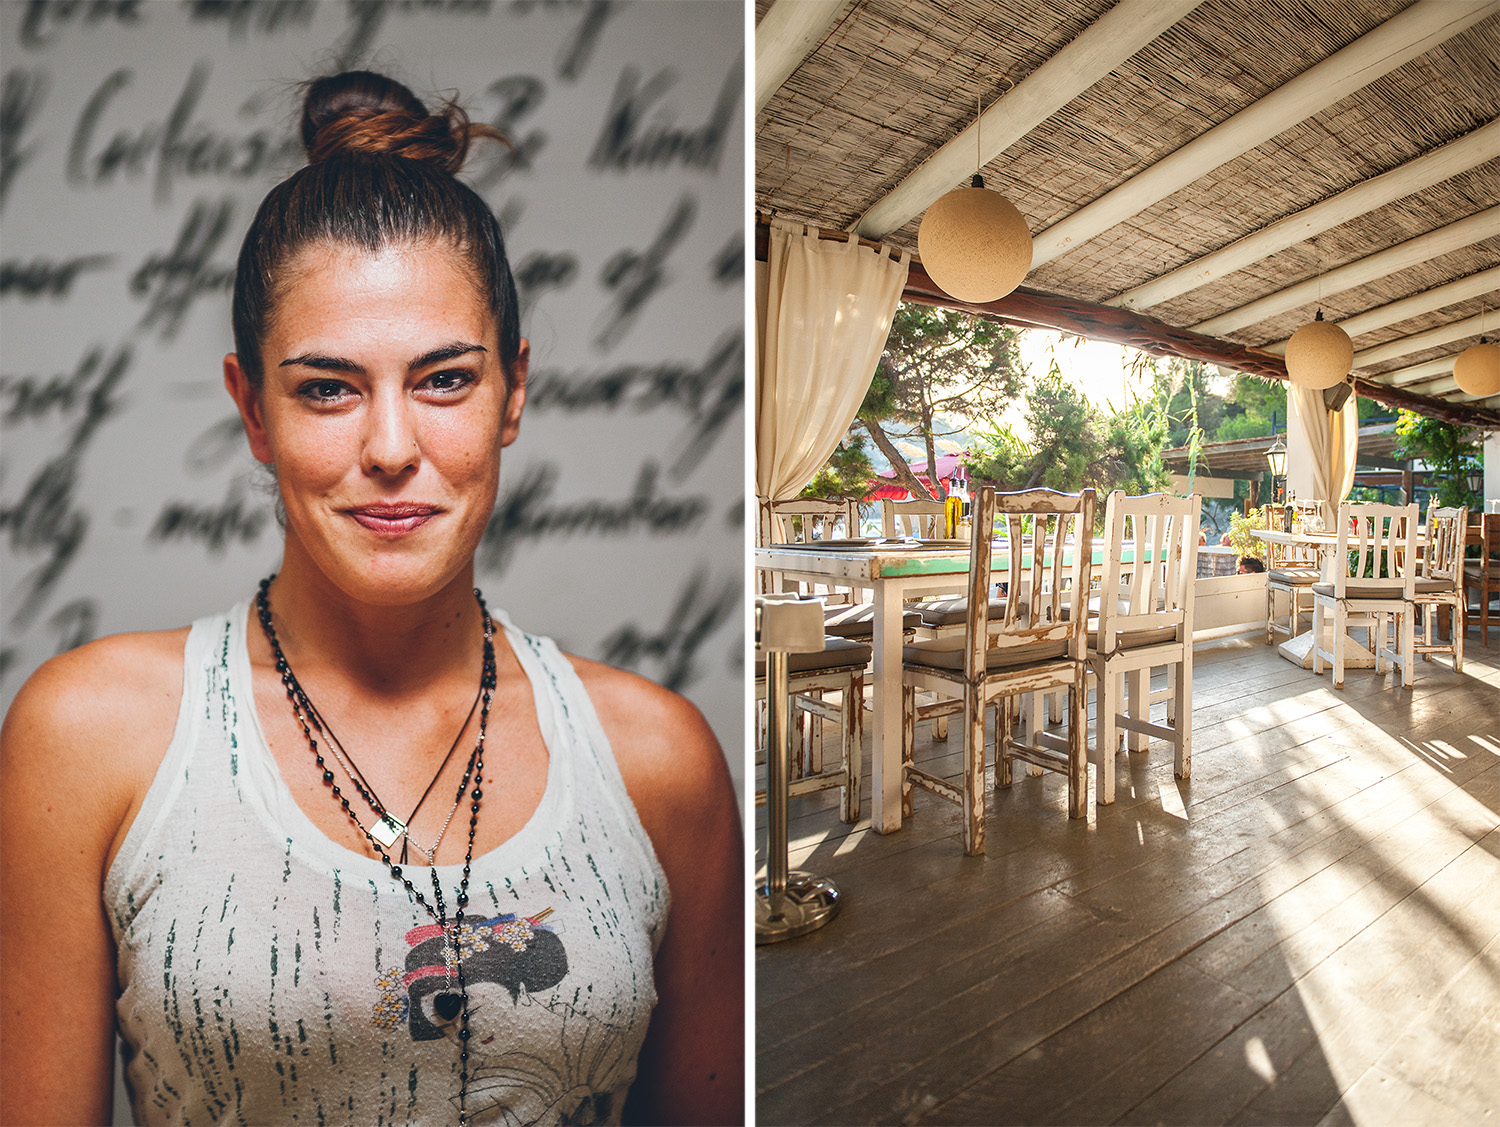 editorial-travel-photography-ibiza-portrait-restaurant.jpg